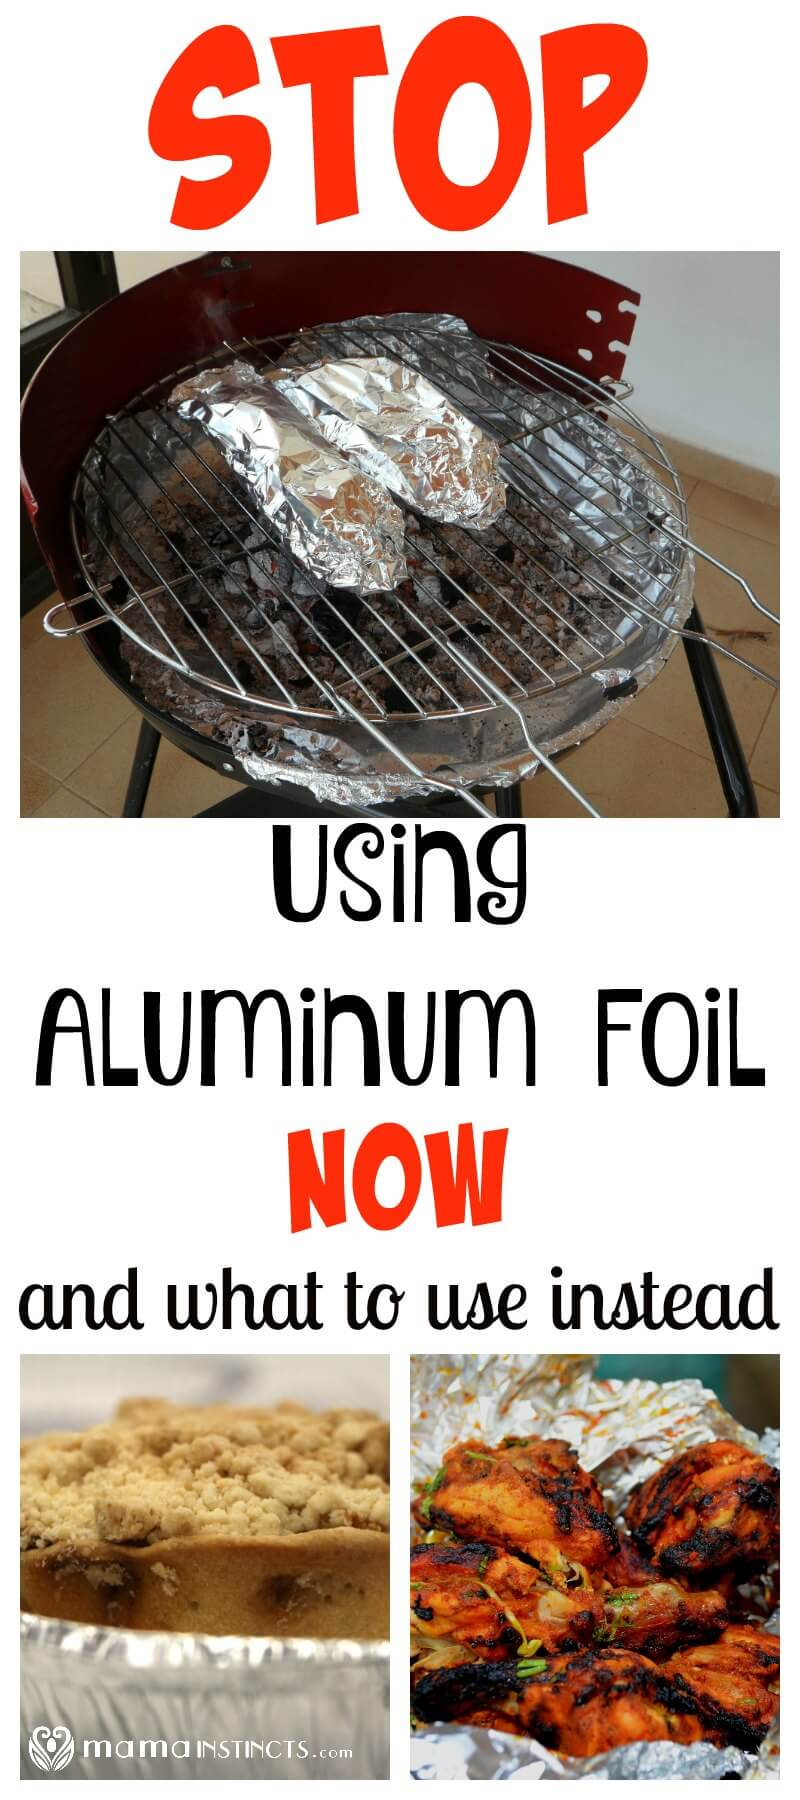 Which side to put the foil when used for baking and storing foods